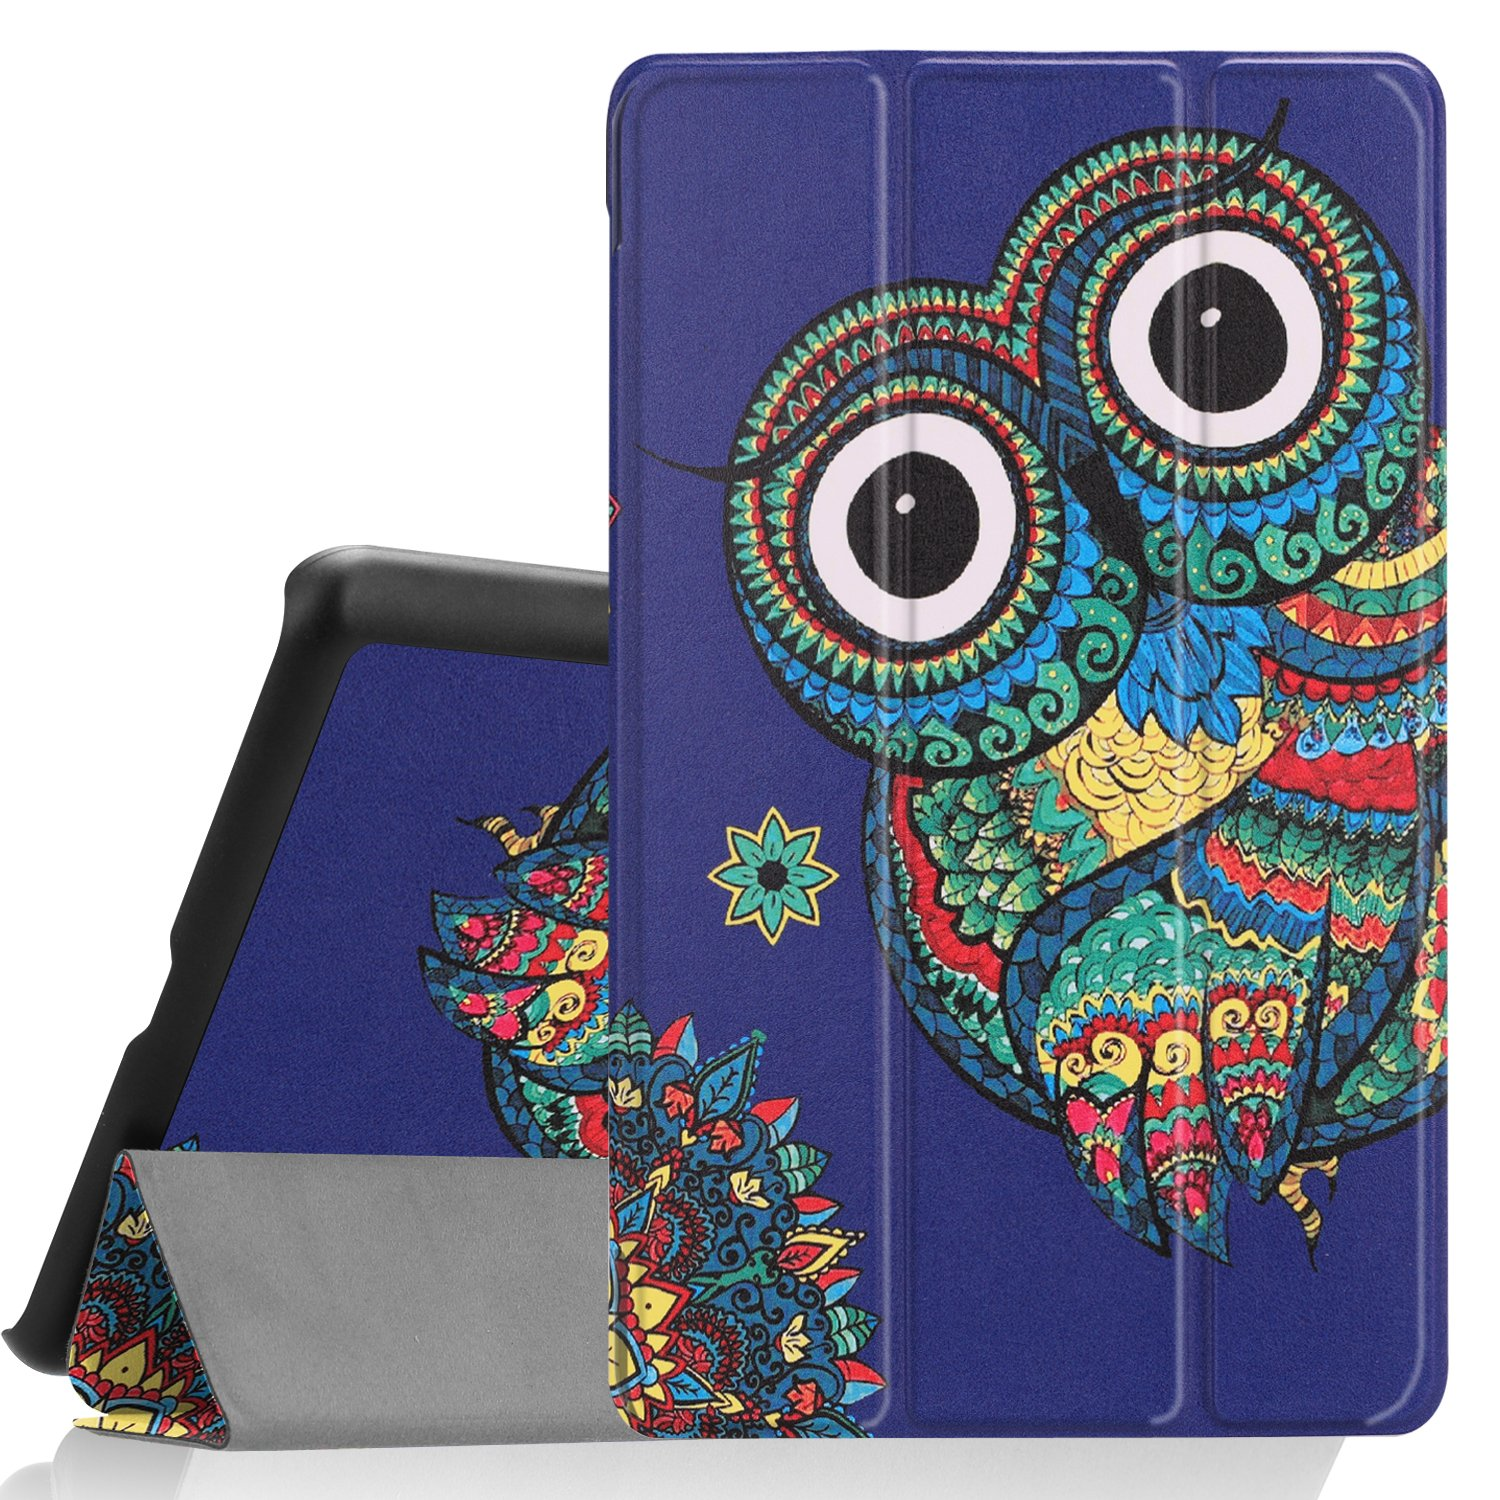 LG G Pad F2 8.0 Sprint (LK460)£Case, Ratesell Slim Fit Protective Durable Premium Leather Stand Folio Case for LG GPad F2 8.0 Sprint Model LK460 8-Inch Android Tablet 2017 Release (Blue Owl)